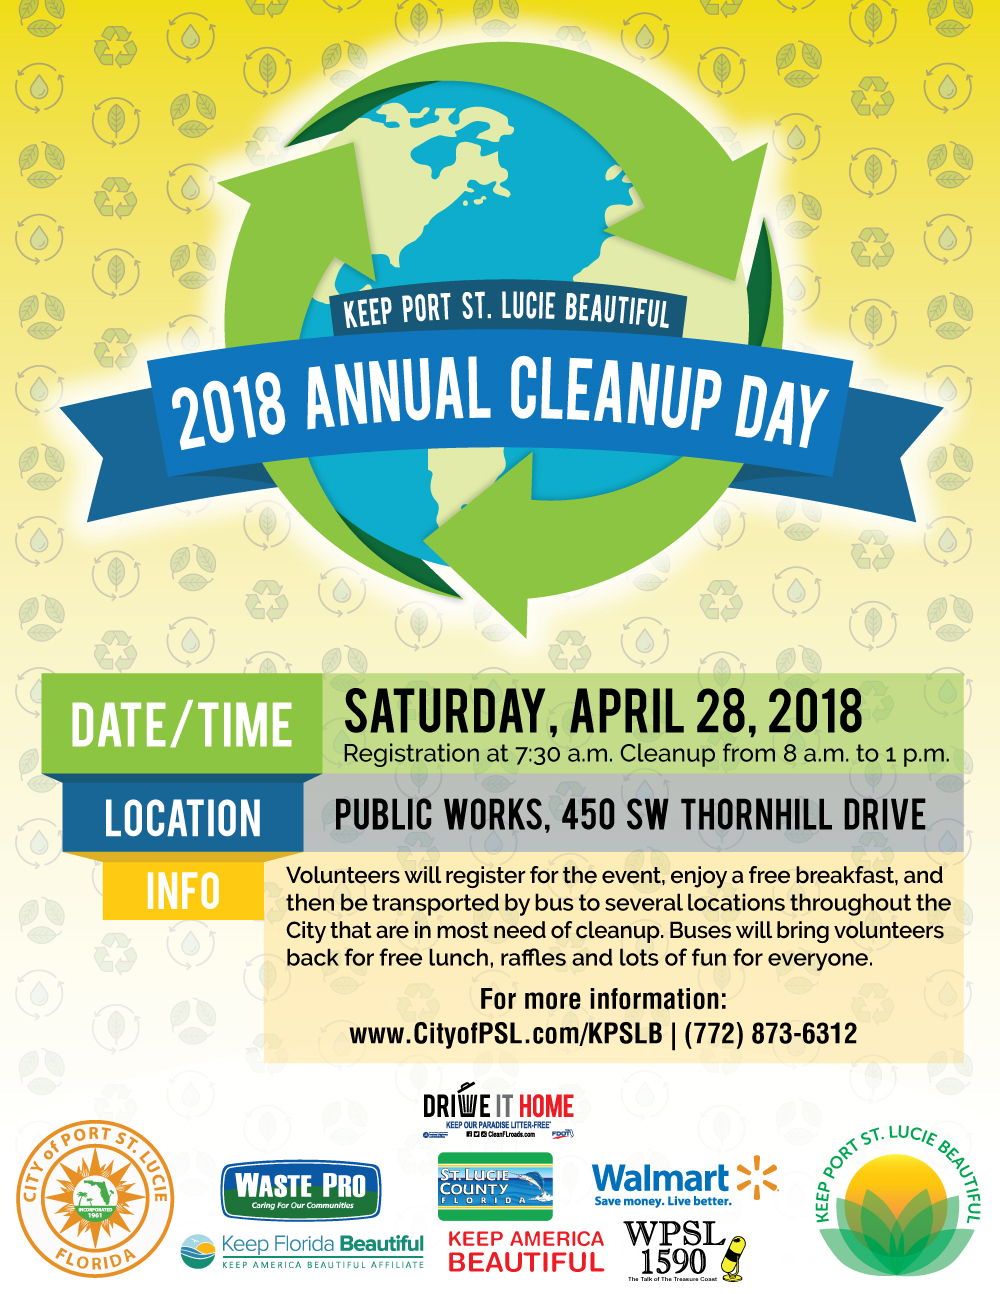 FLYER-kpslb-annual-cleanupday-2018